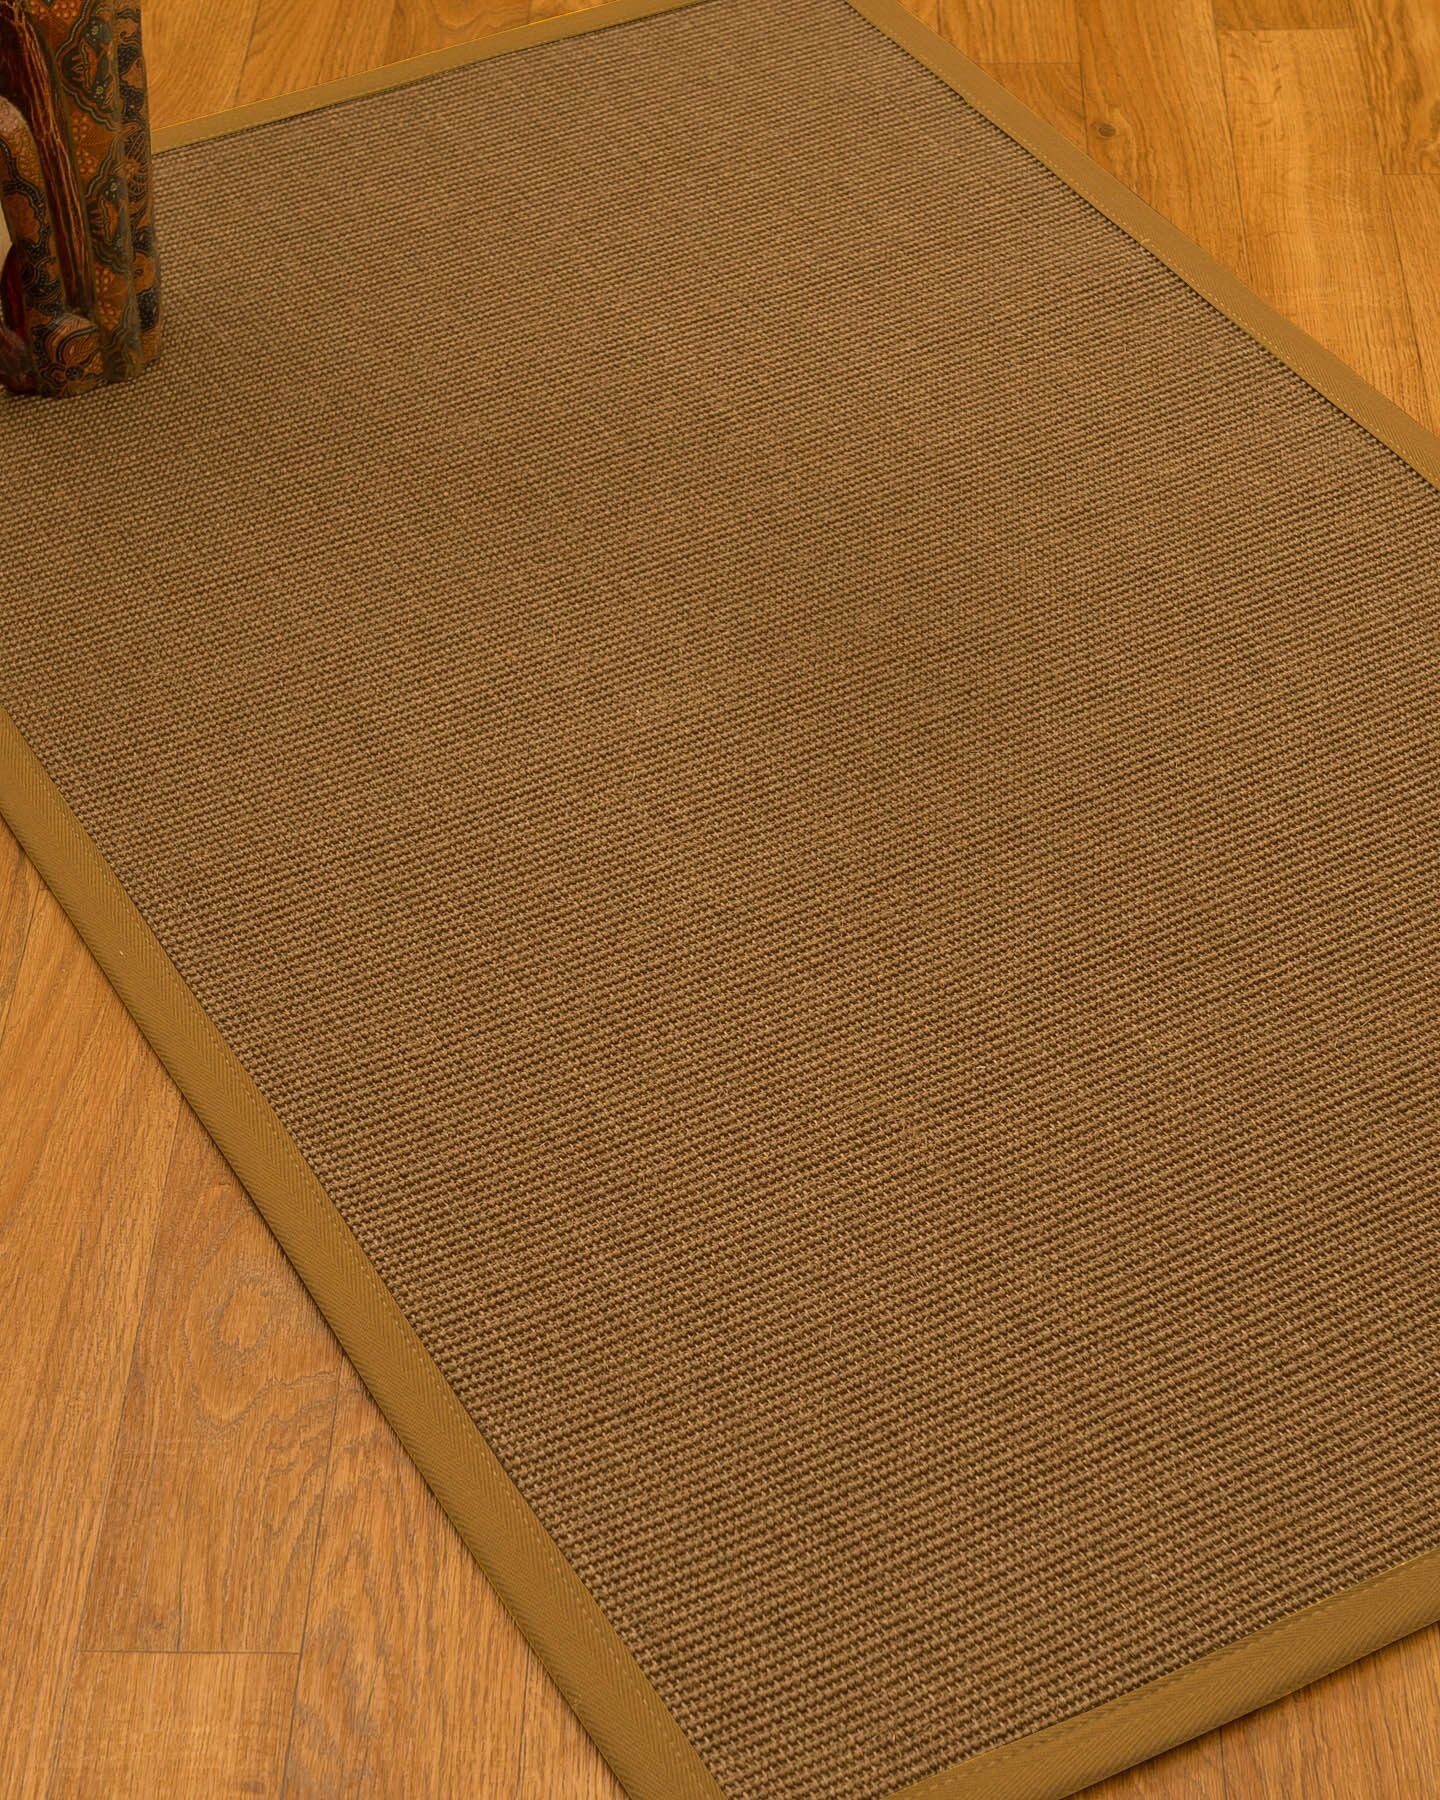 Huntwood Border Hand-Woven Brown/Olive Area Rug Rug Pad Included: No, Rug Size: Rectangle 2' x 3'